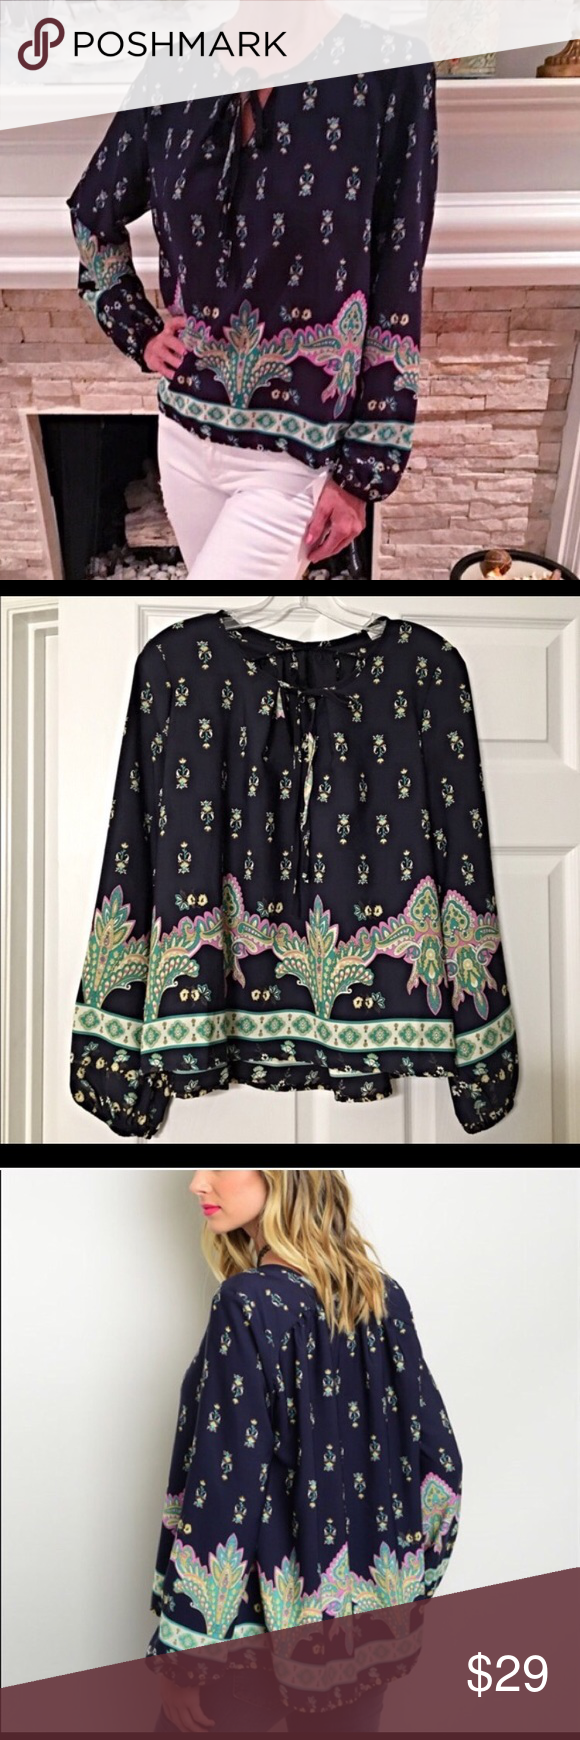 Stunning Contrast Navy/Mint boho blouse LAST ONE! Beautiful pattern with lavender- mint and pink in navy with tie top Tops Blouses